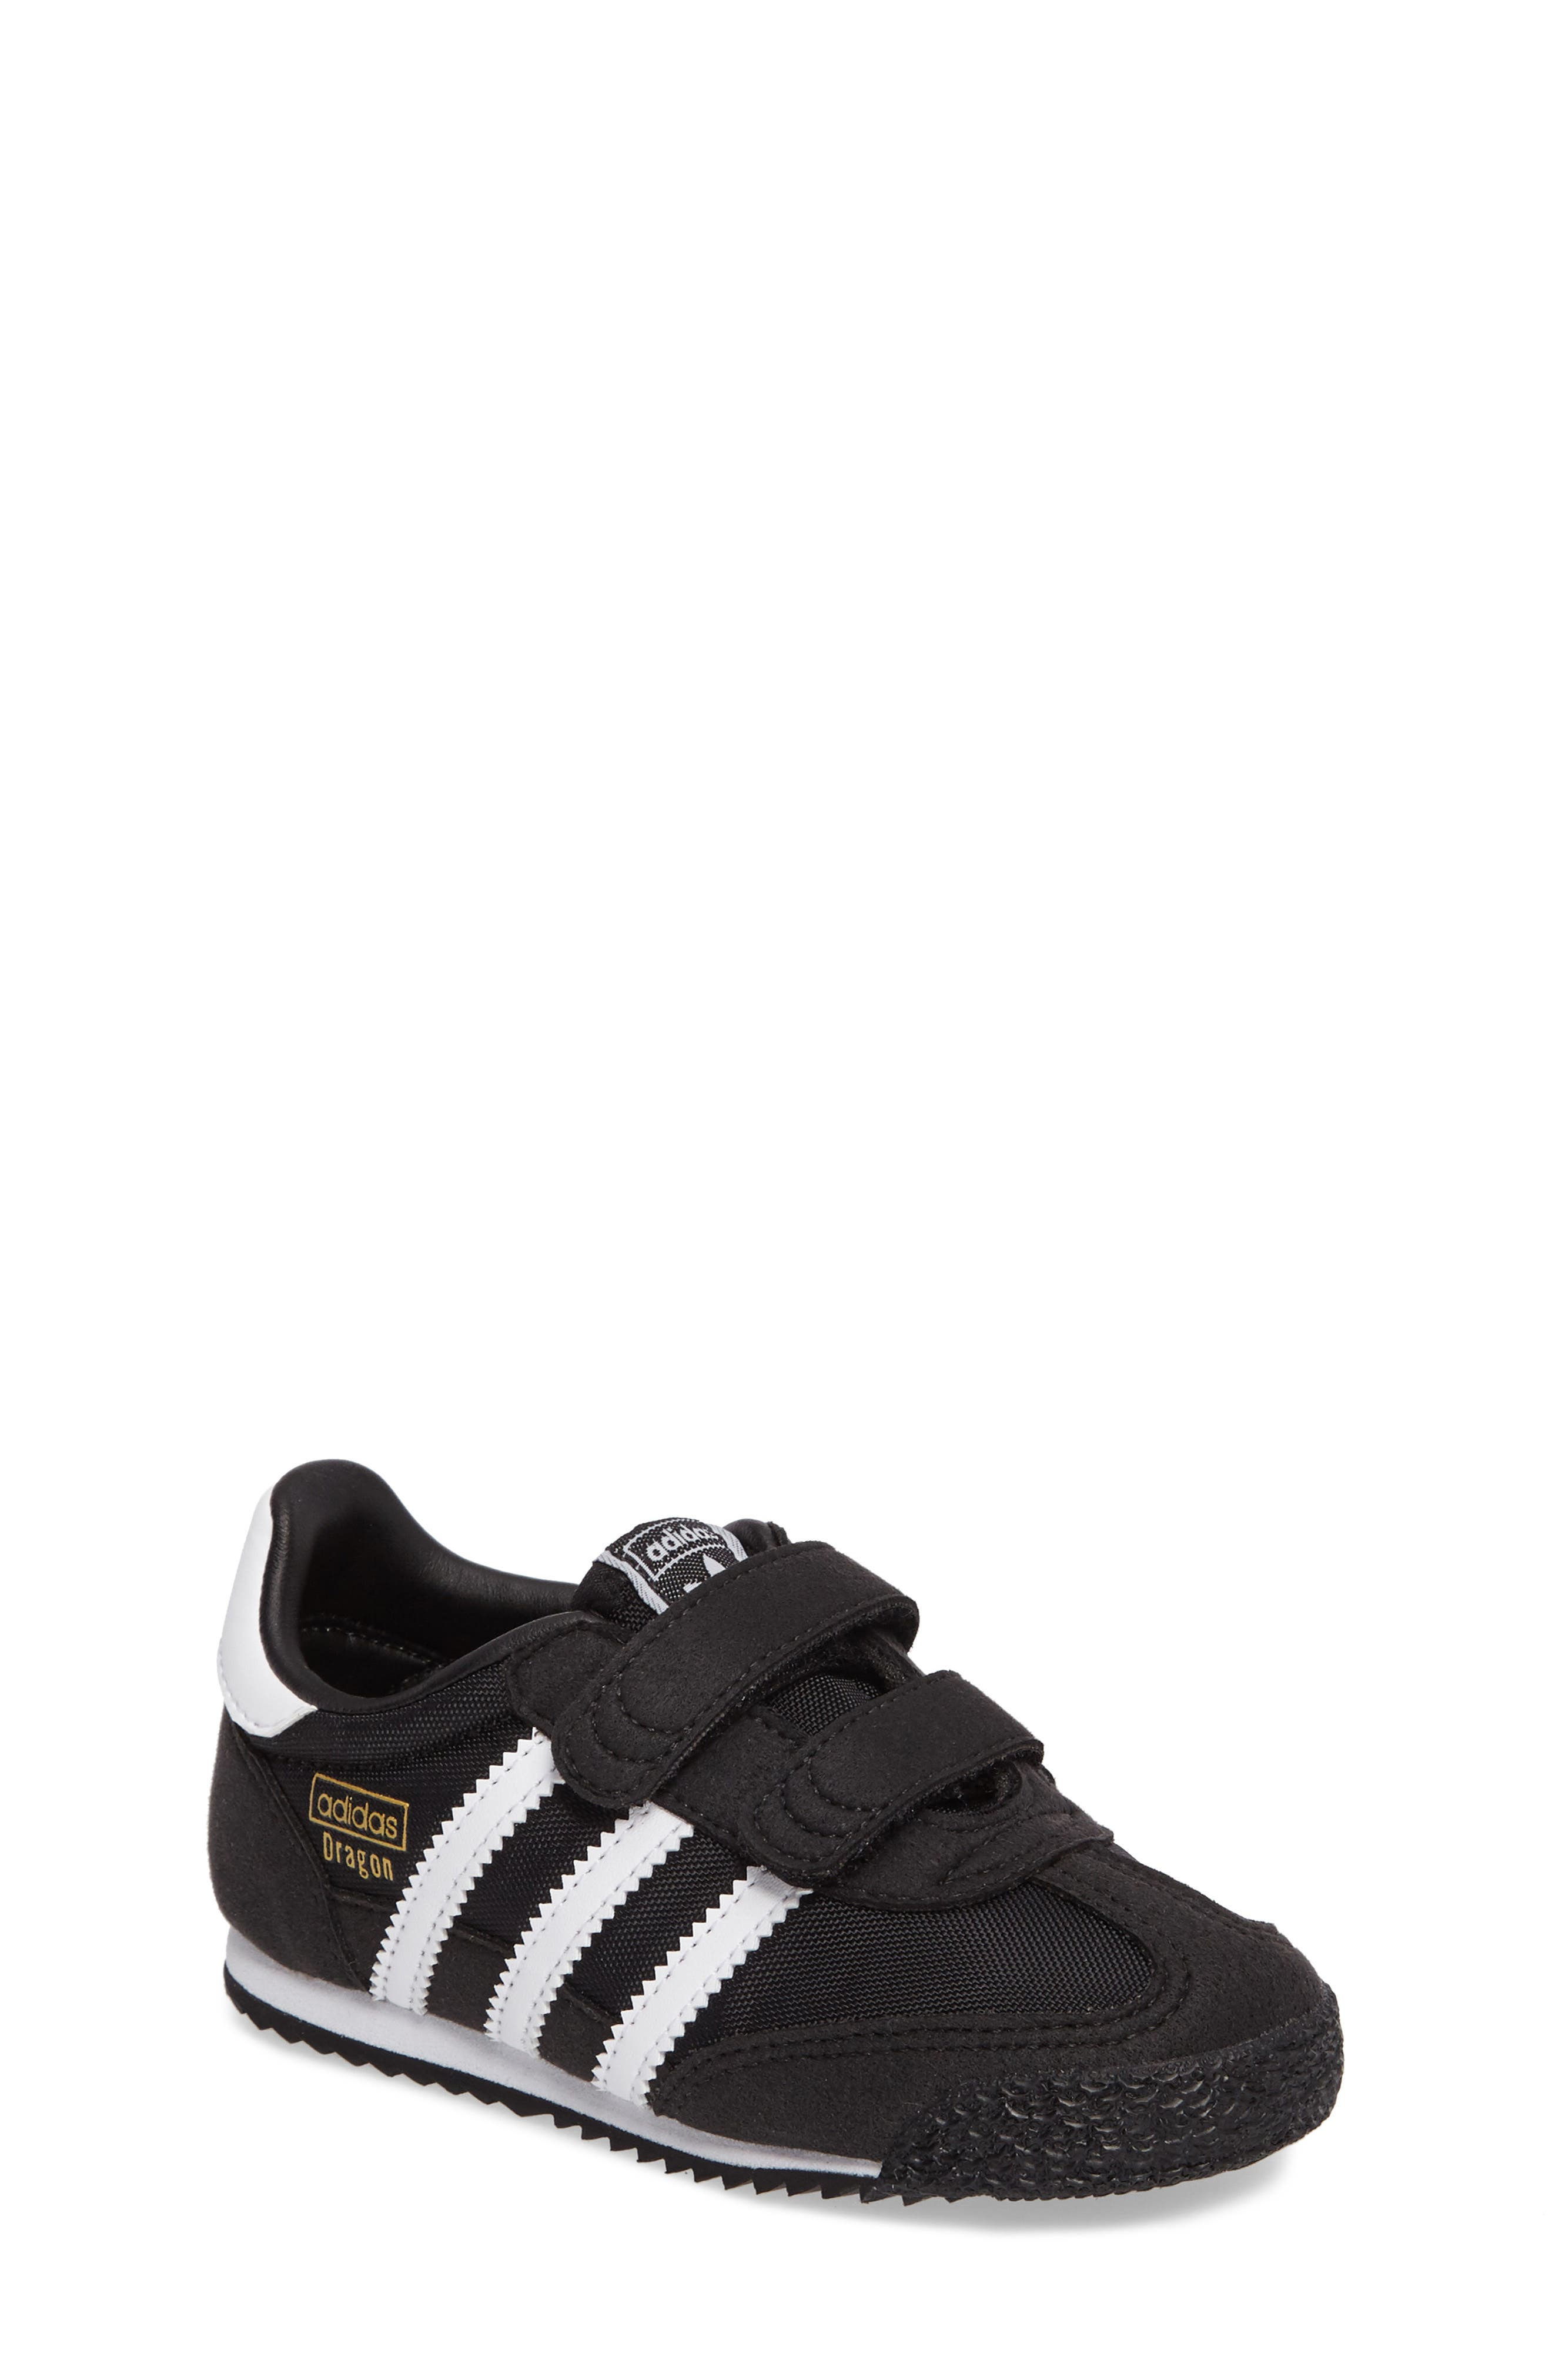 adidas Dragon OG CF Athletic Shoe (Baby, Walker & Toddler)